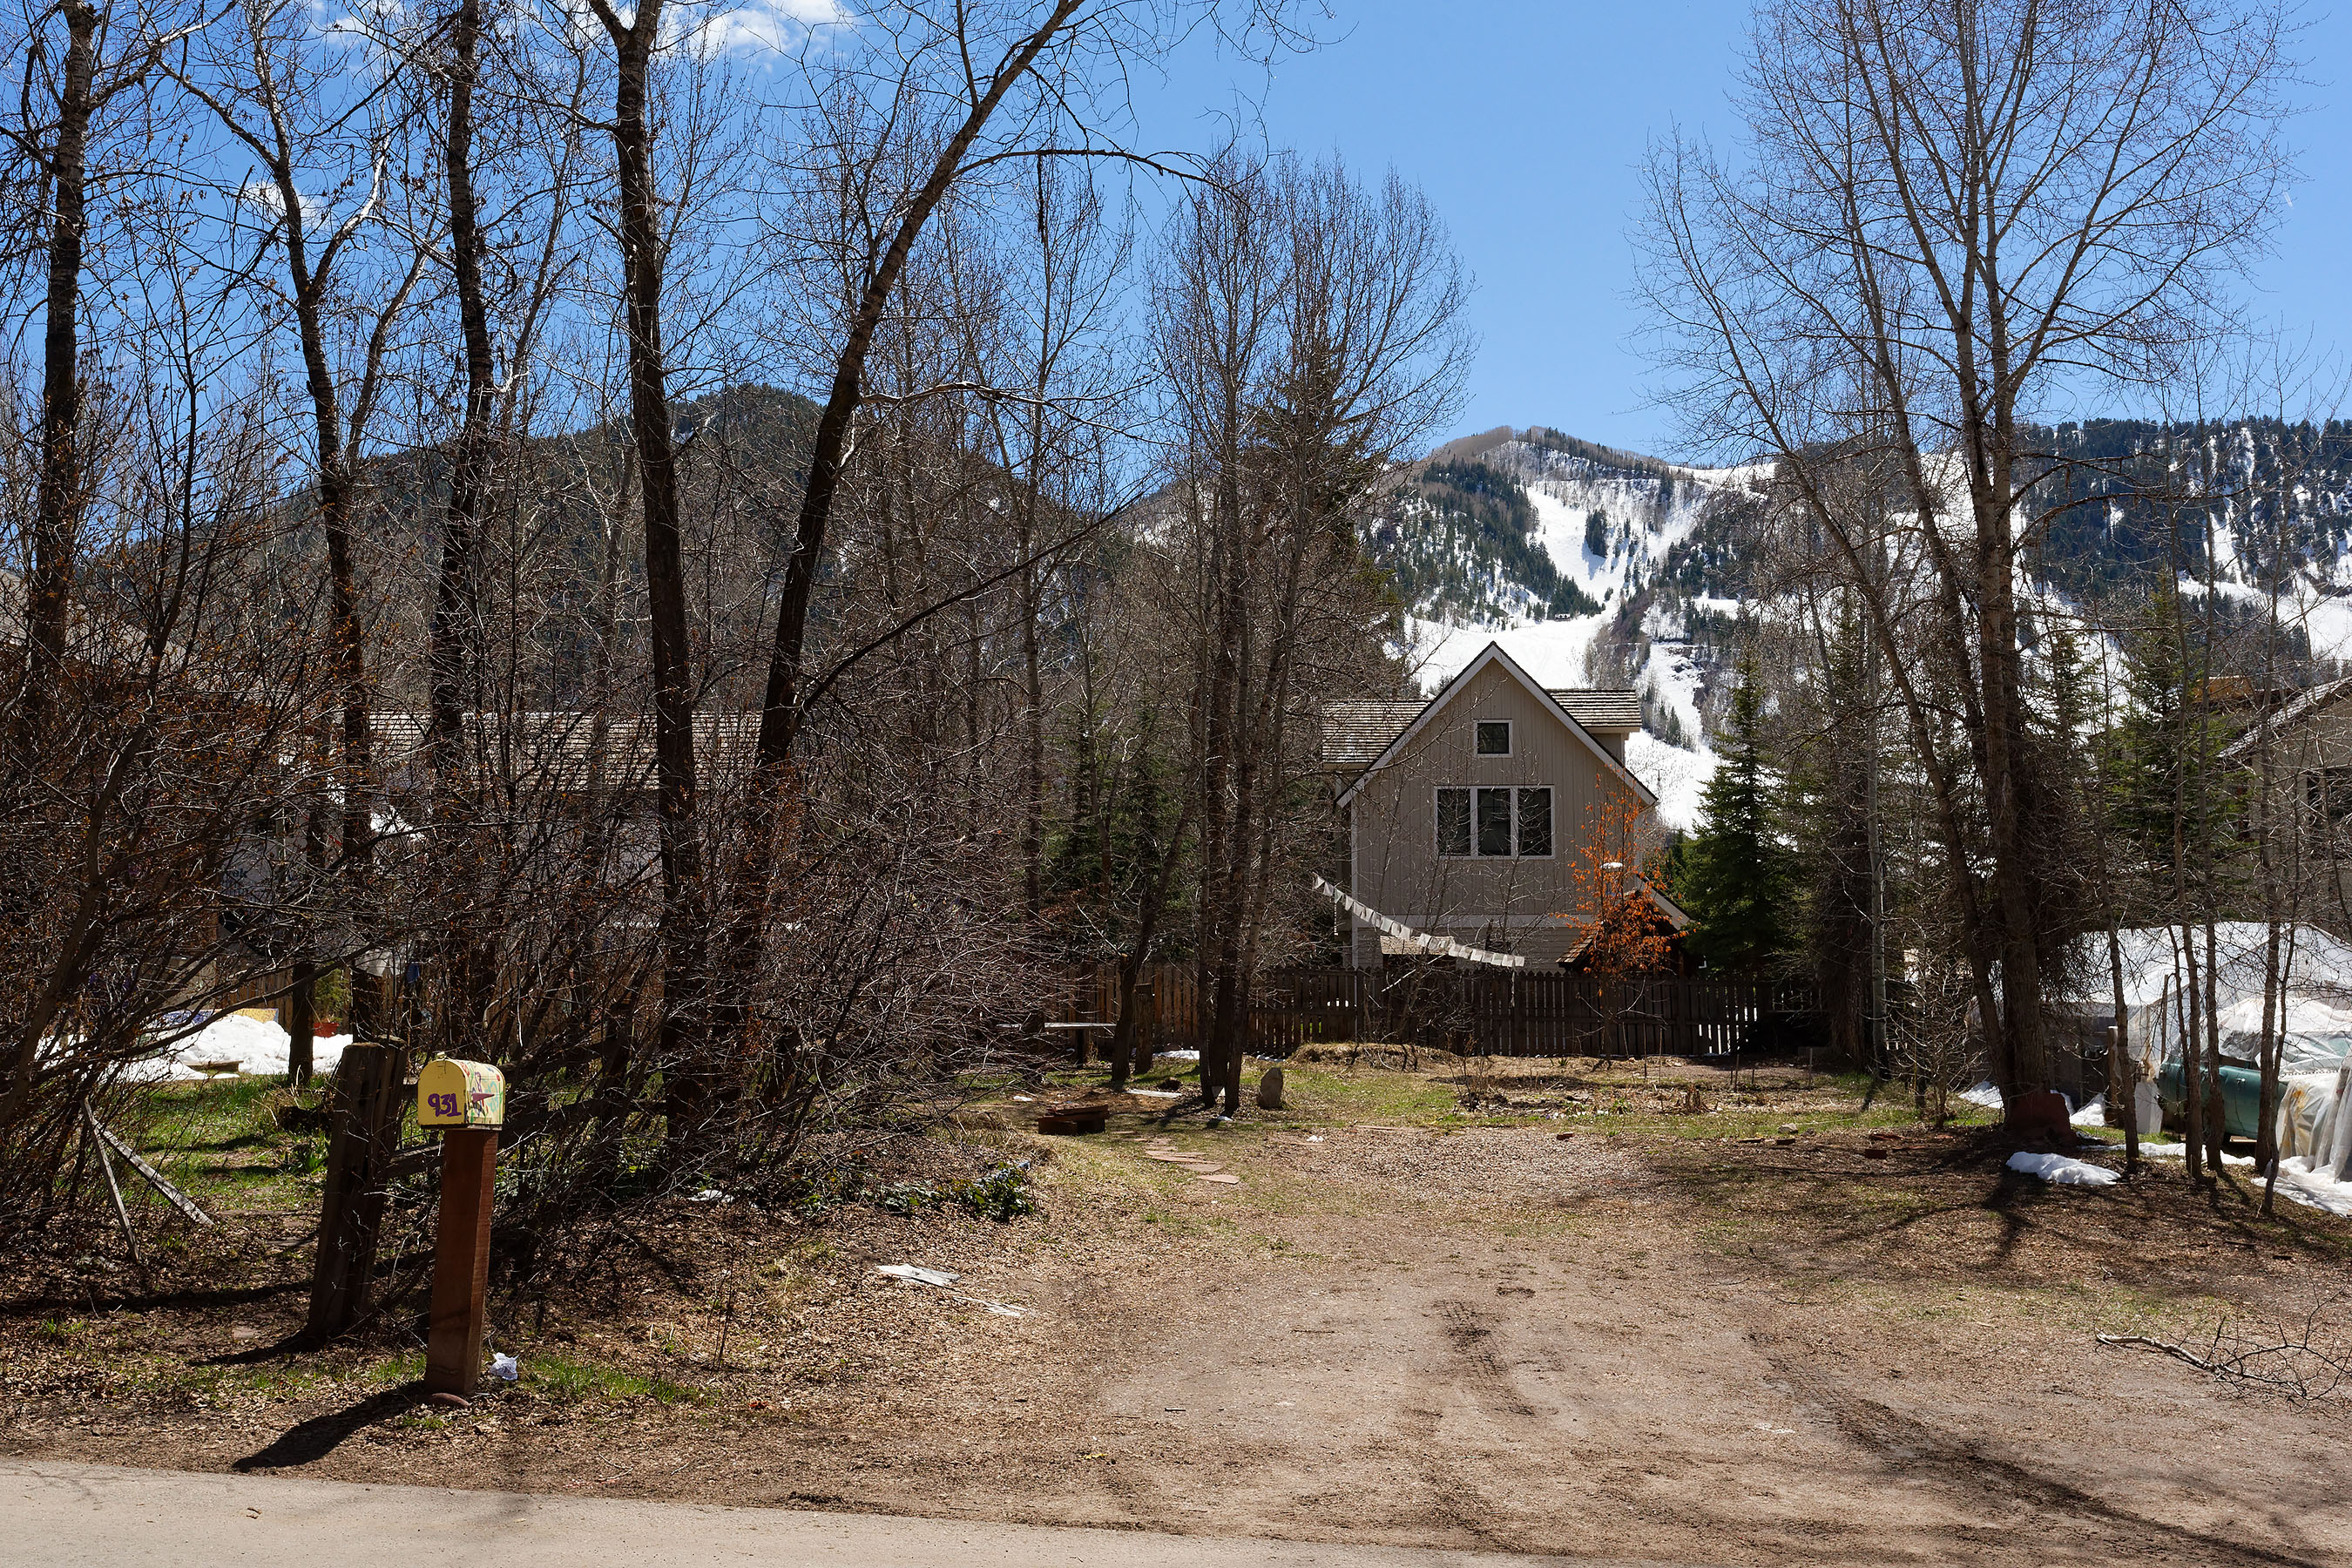 Land for Sale at Lots of Potential 931 Gibson Avenue Smuggler, Aspen, Colorado, 81611 United States